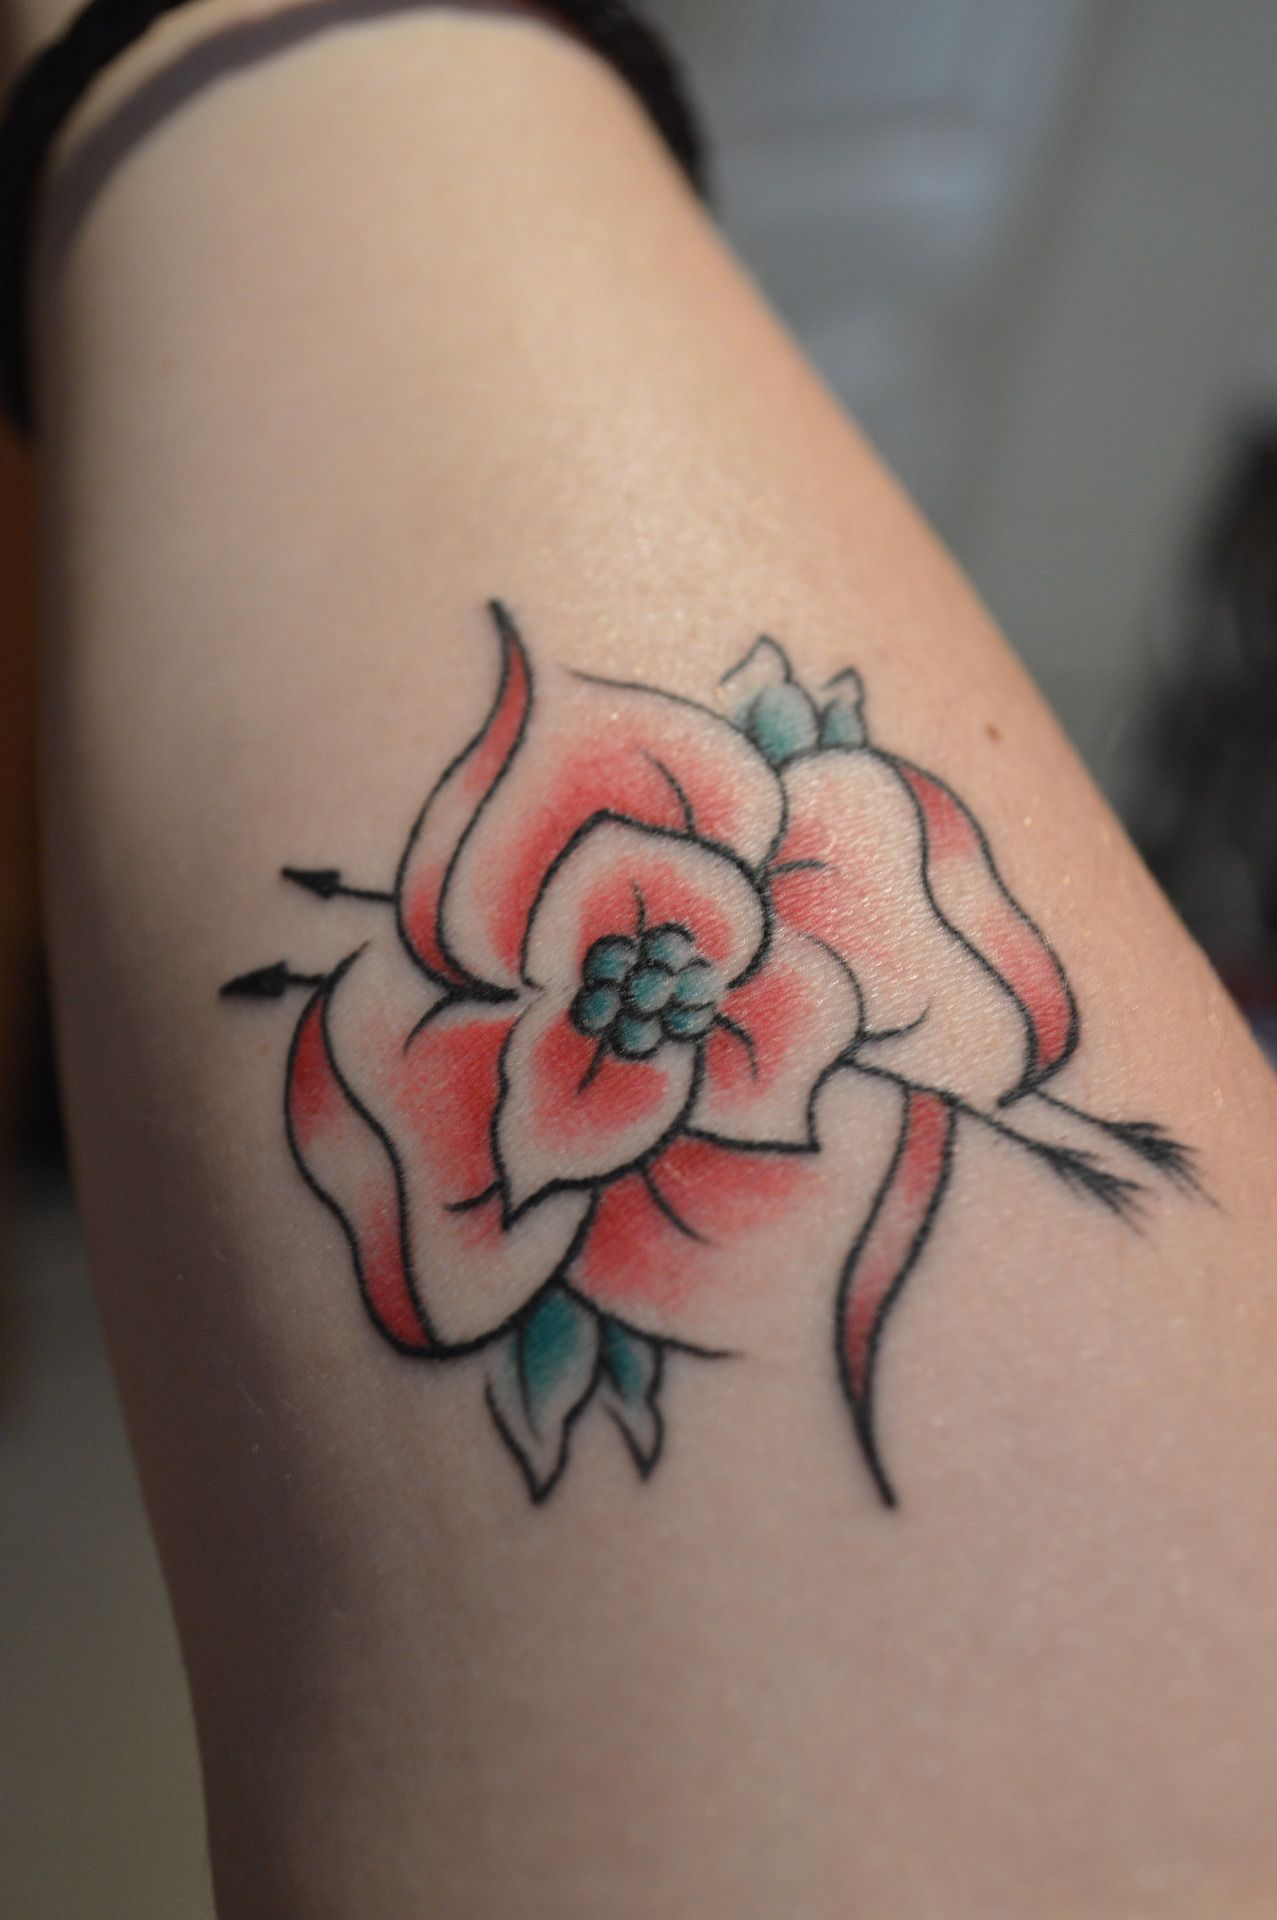 La Dispute rose by Sarah, Vivid Ink Birmingham, England